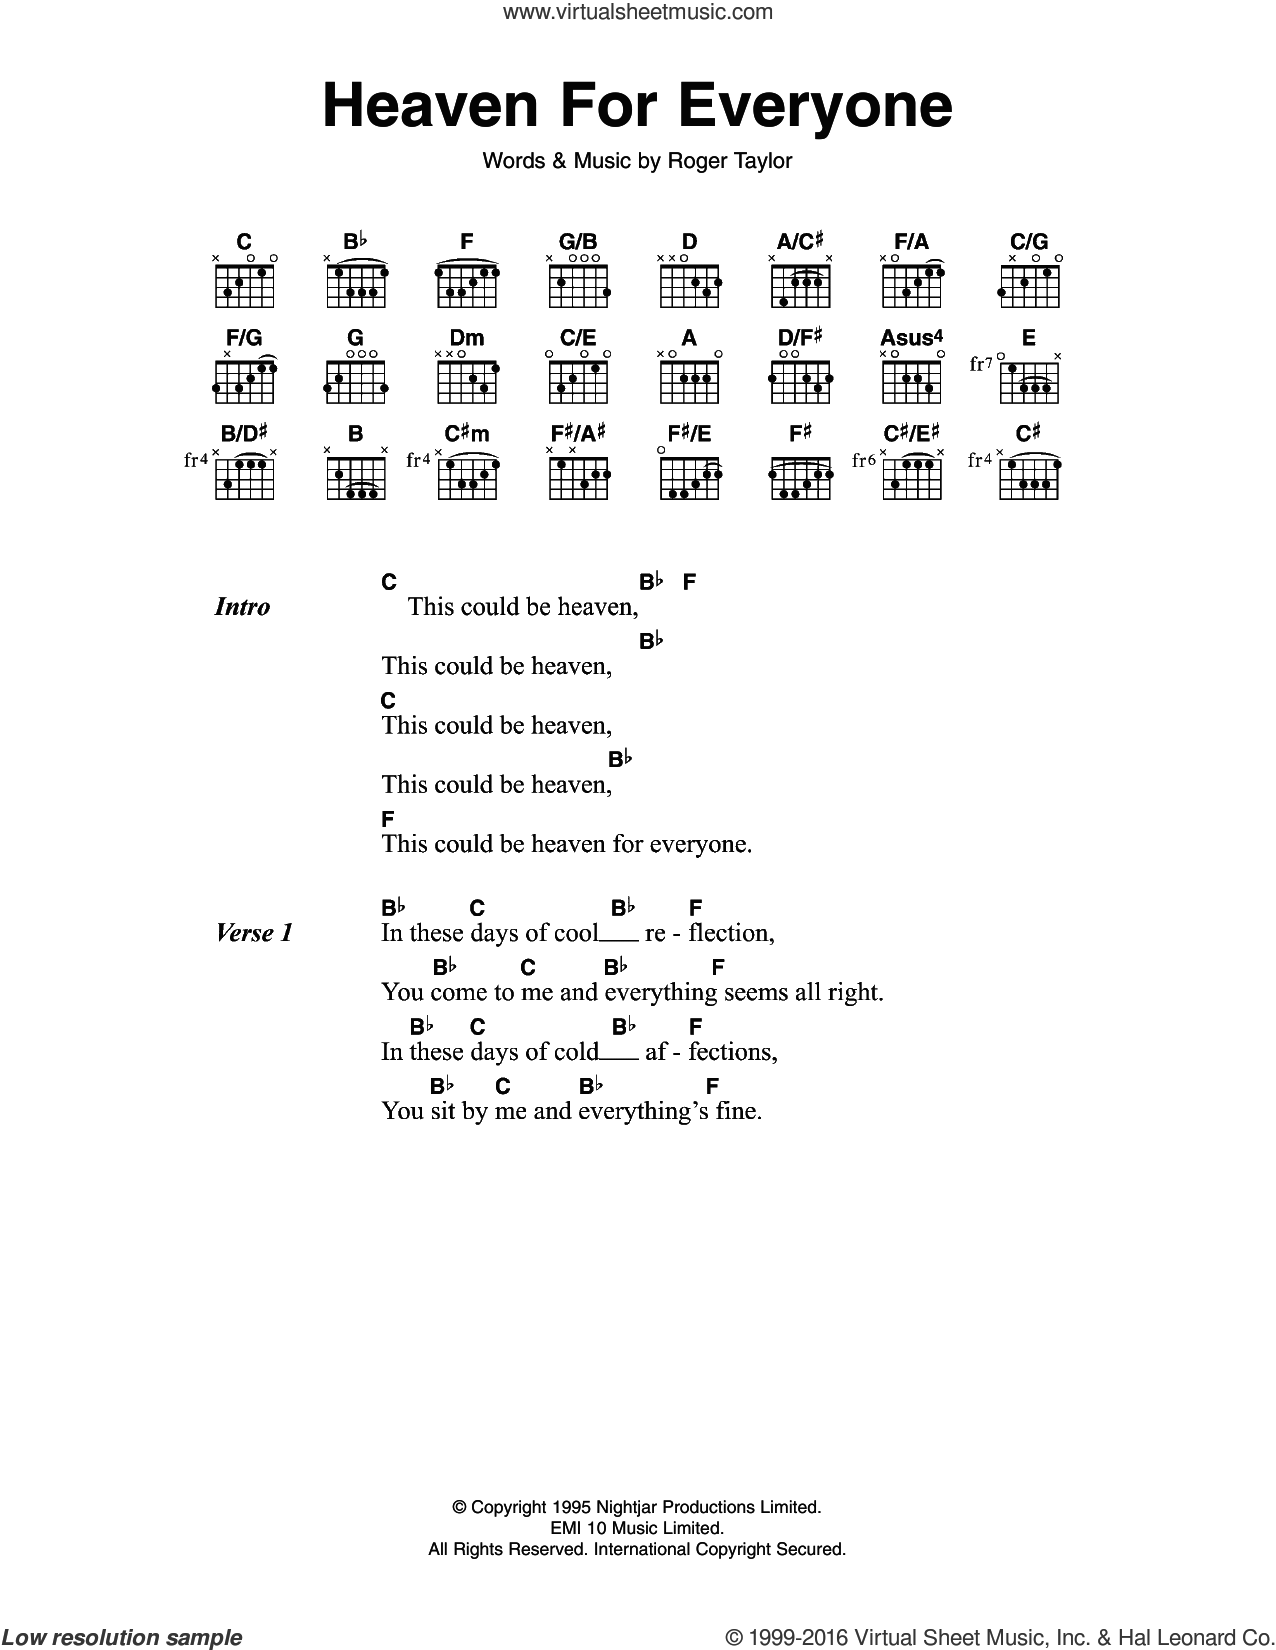 Heaven For Everyone sheet music for guitar (chords) by Queen and Roger Meddows Taylor, intermediate skill level